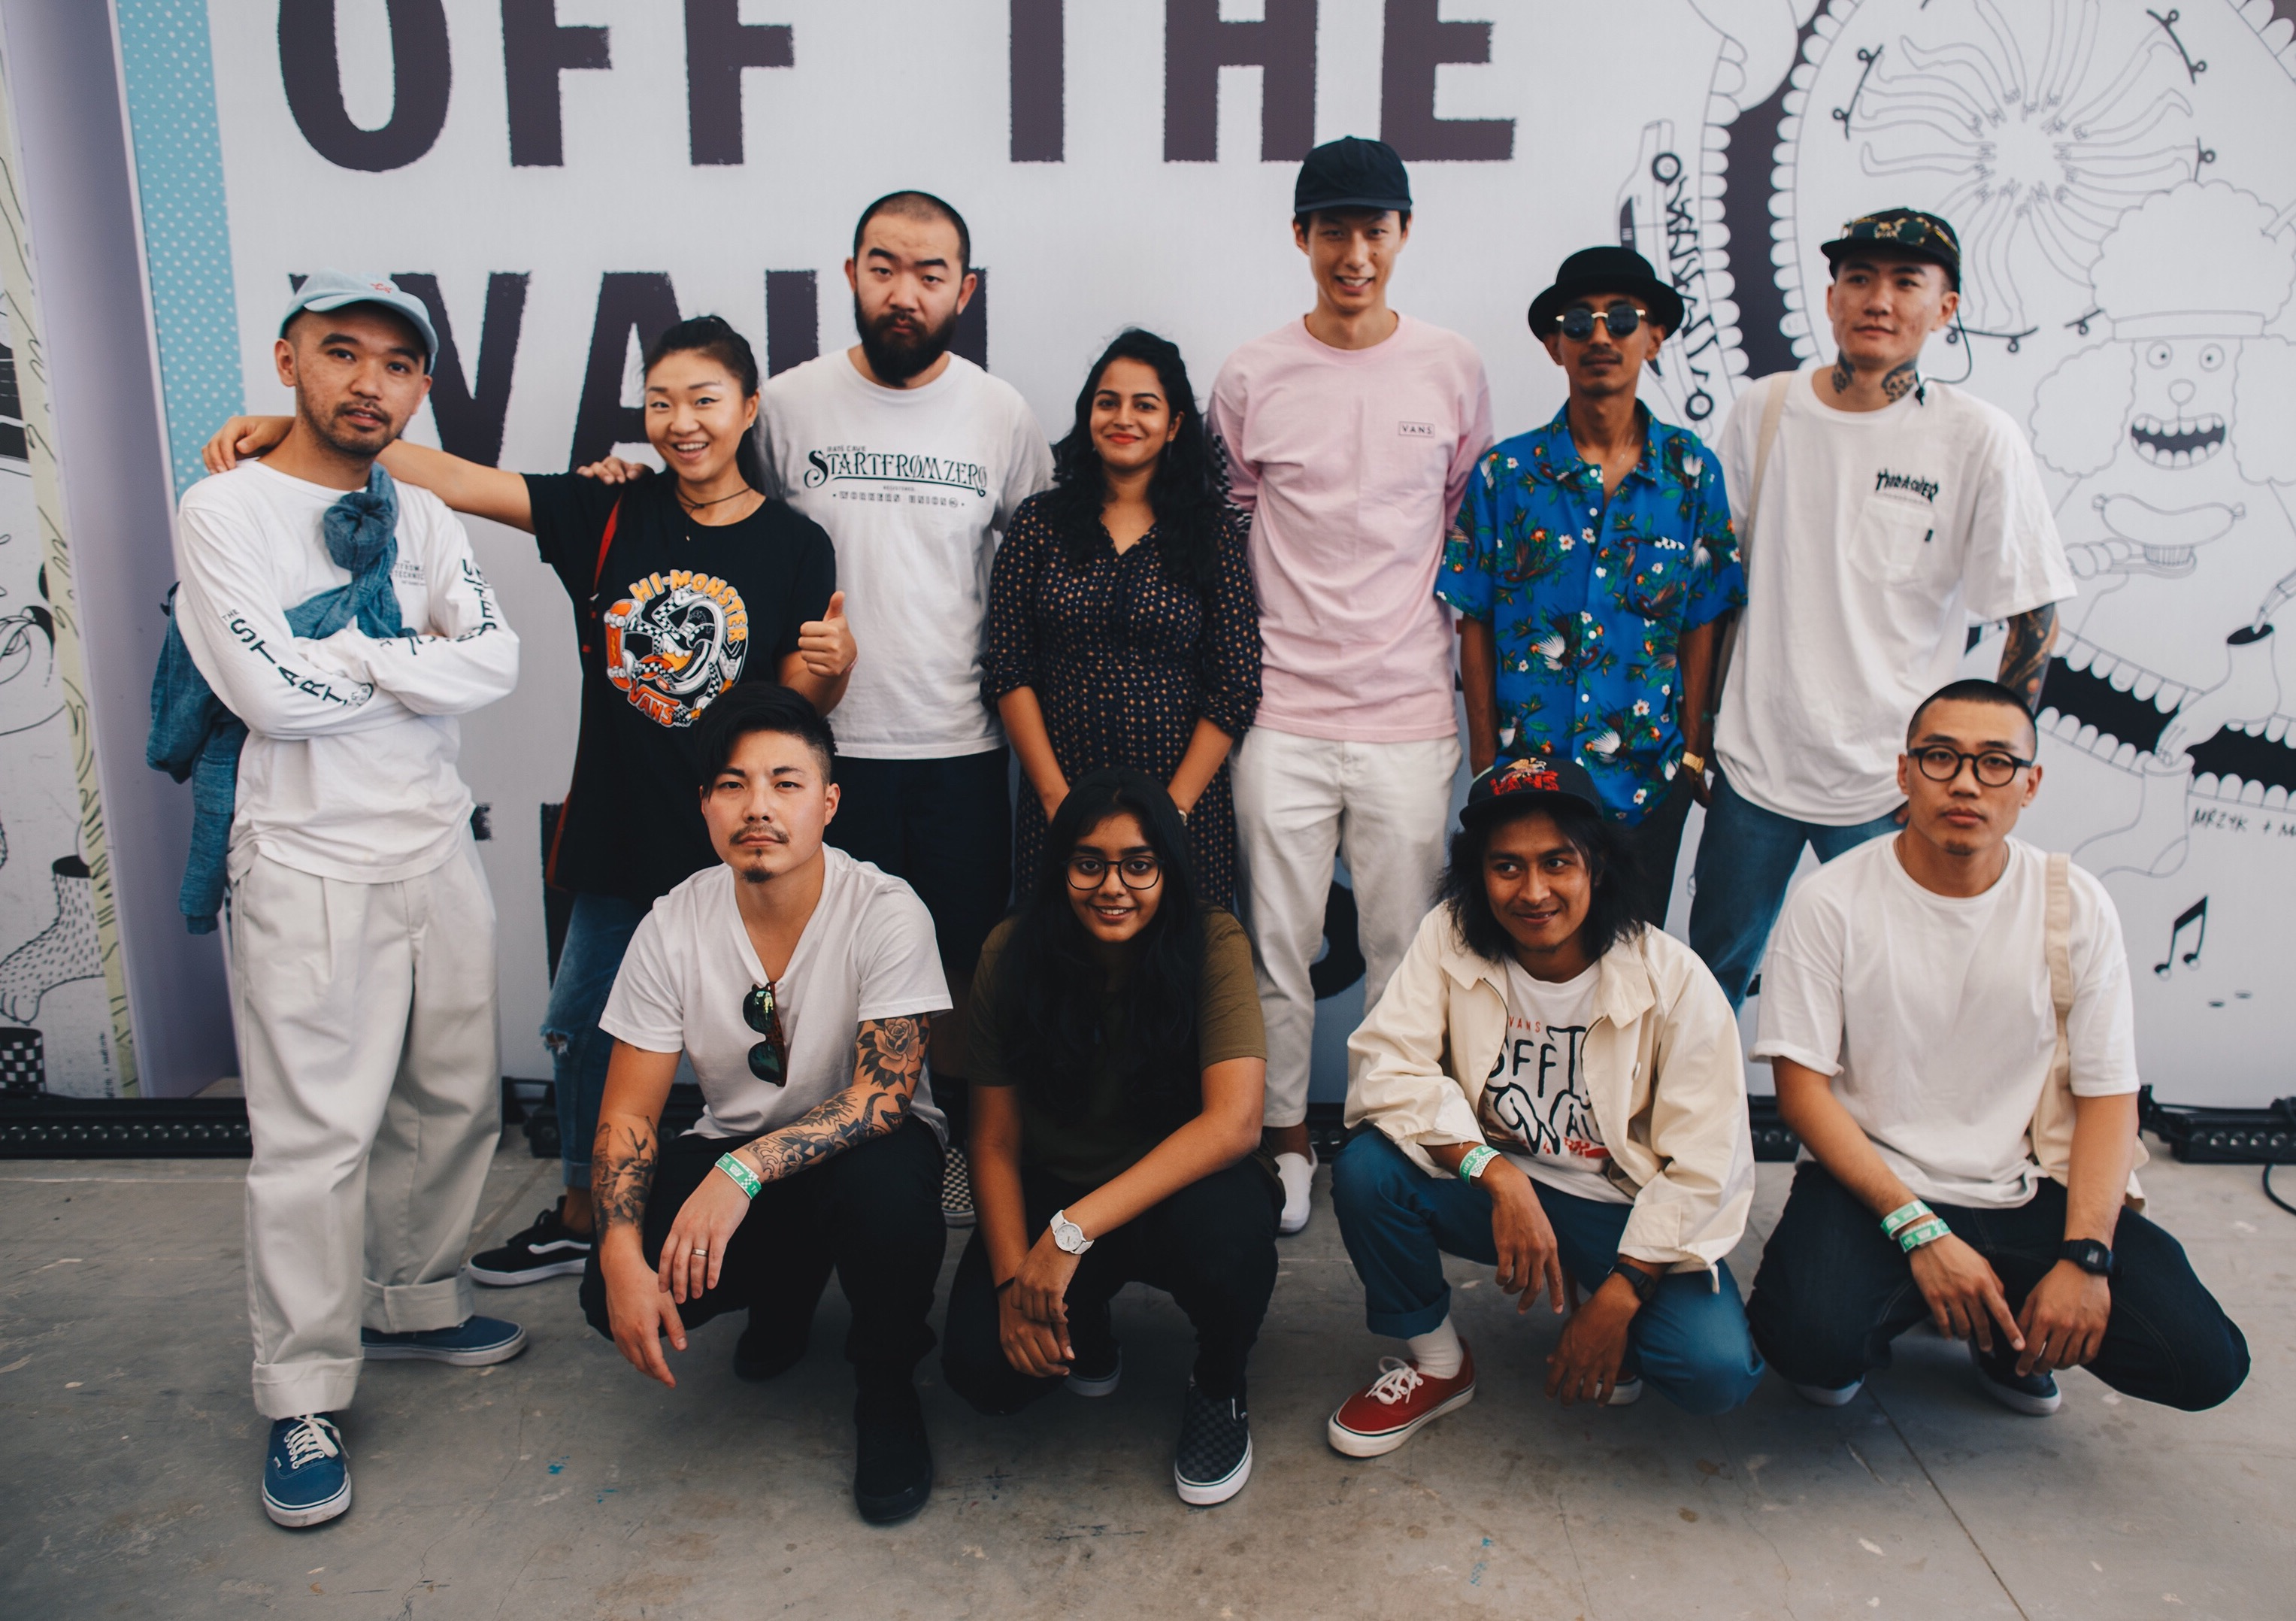 VOTE NOW FOR THE FINAL WINNER OF 2017 VANS ASIA CUSTOM CULTURE COMPETITION